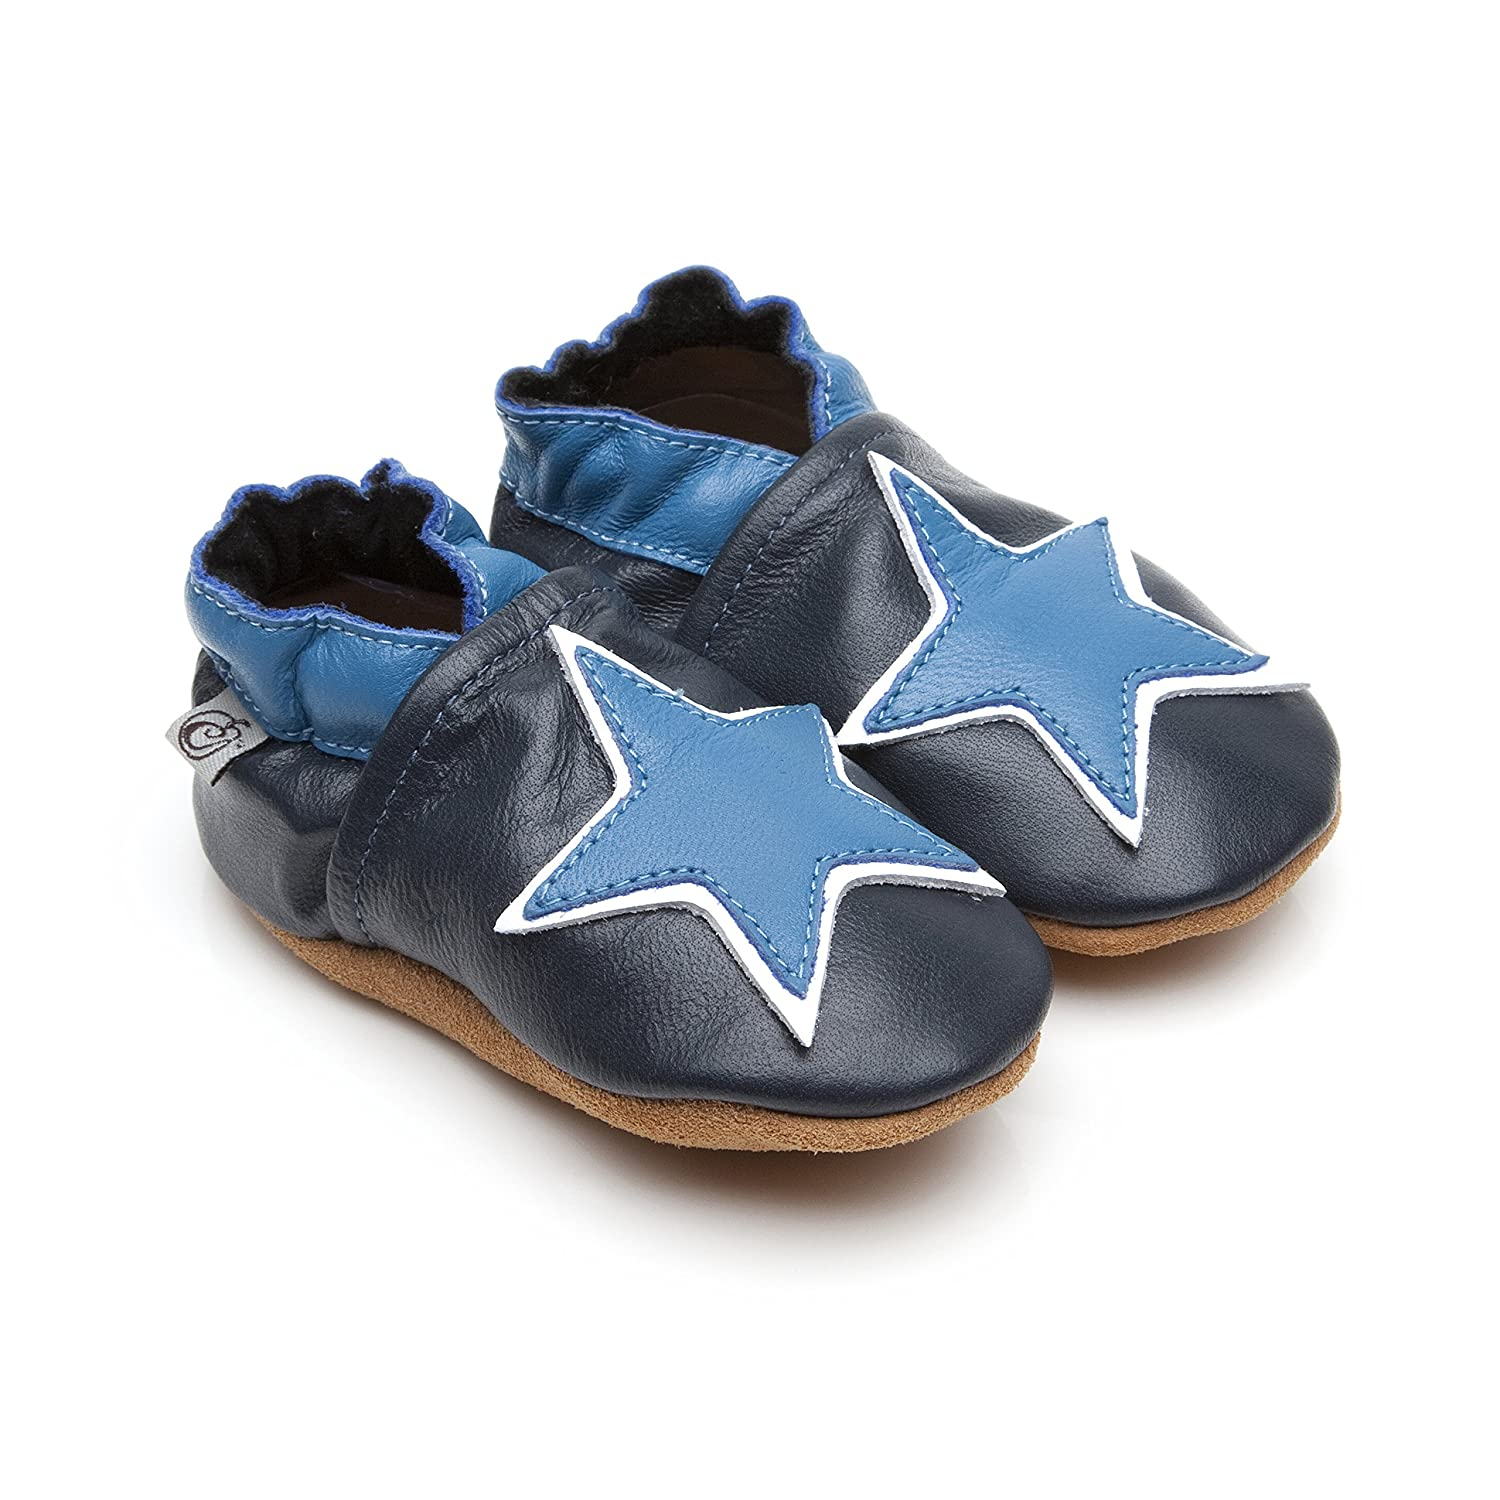 Soft Leather Baby Shoes Blue Star 6 12 Months Amazon Baby